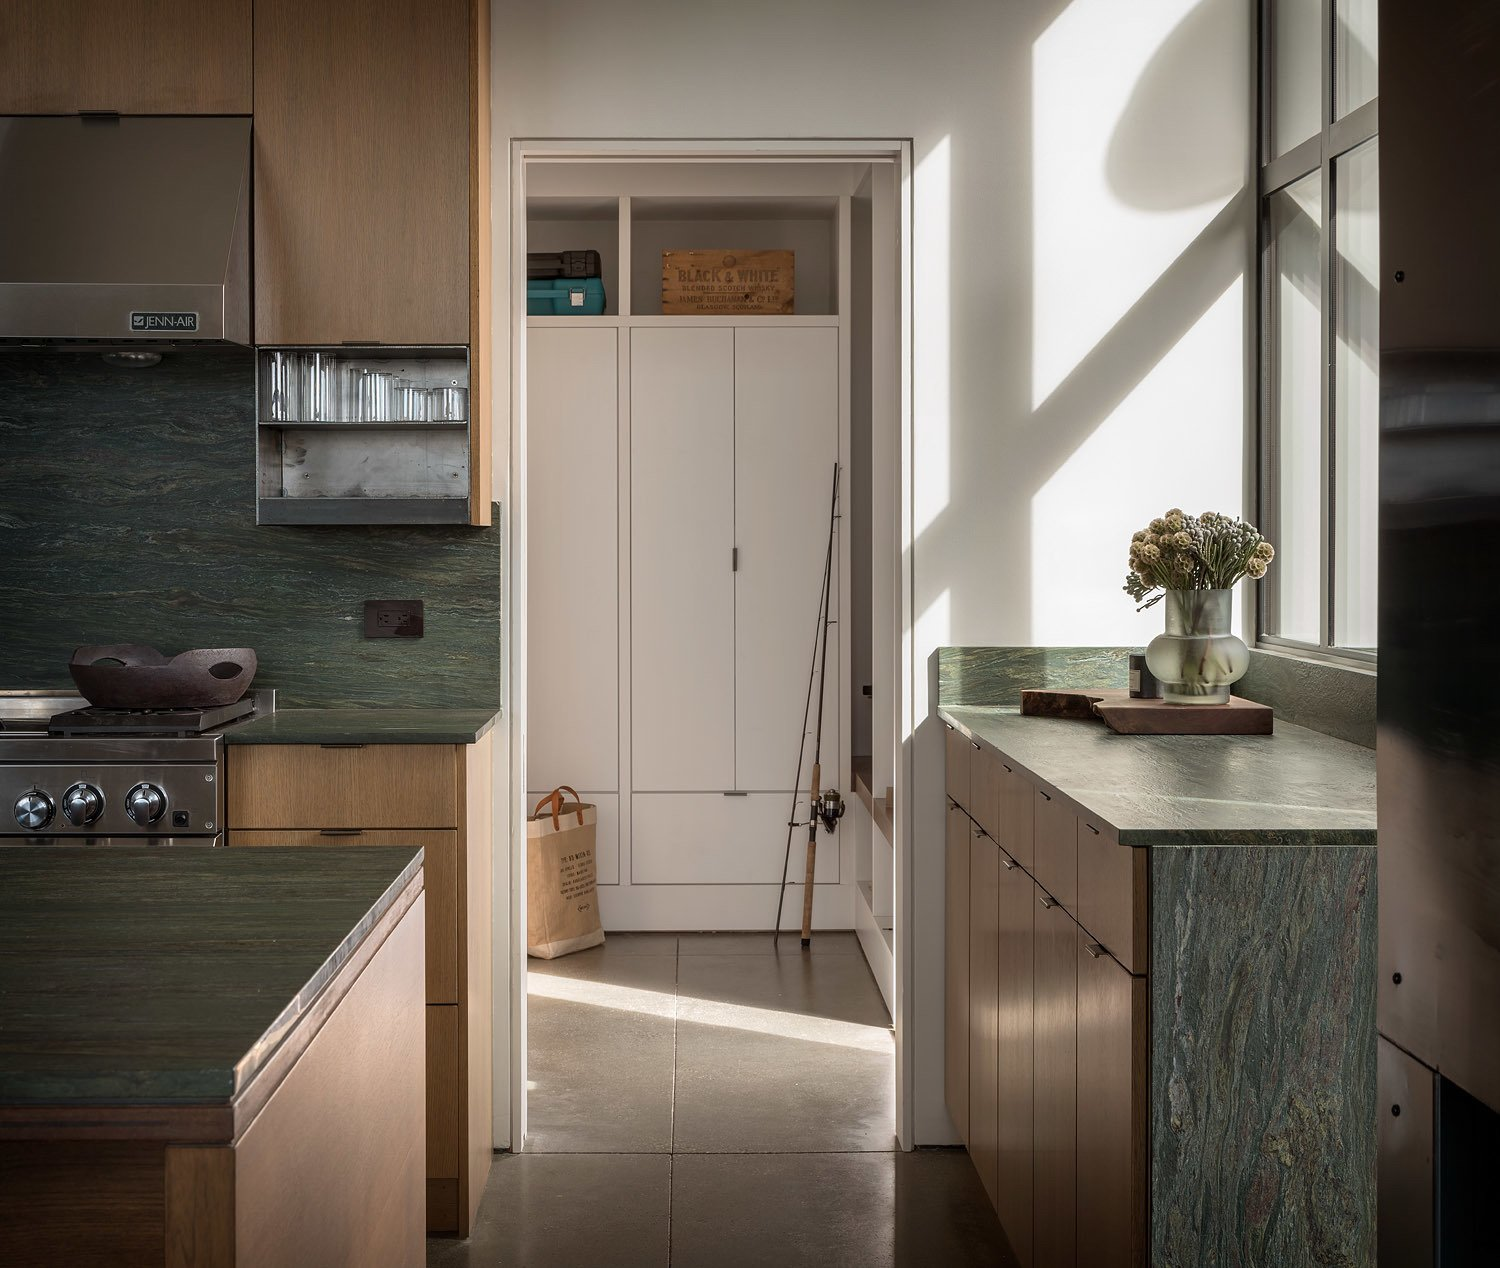 Kitchen, Concrete Floor, Stone Slab Backsplashe, Range, Range Hood, and Wood Cabinet The soapstone counters and back splash resonate with the natural setting, drawing in hues and colors from the surrounding landscape.   Best Photos from False Bay Home and Writer's Cabin